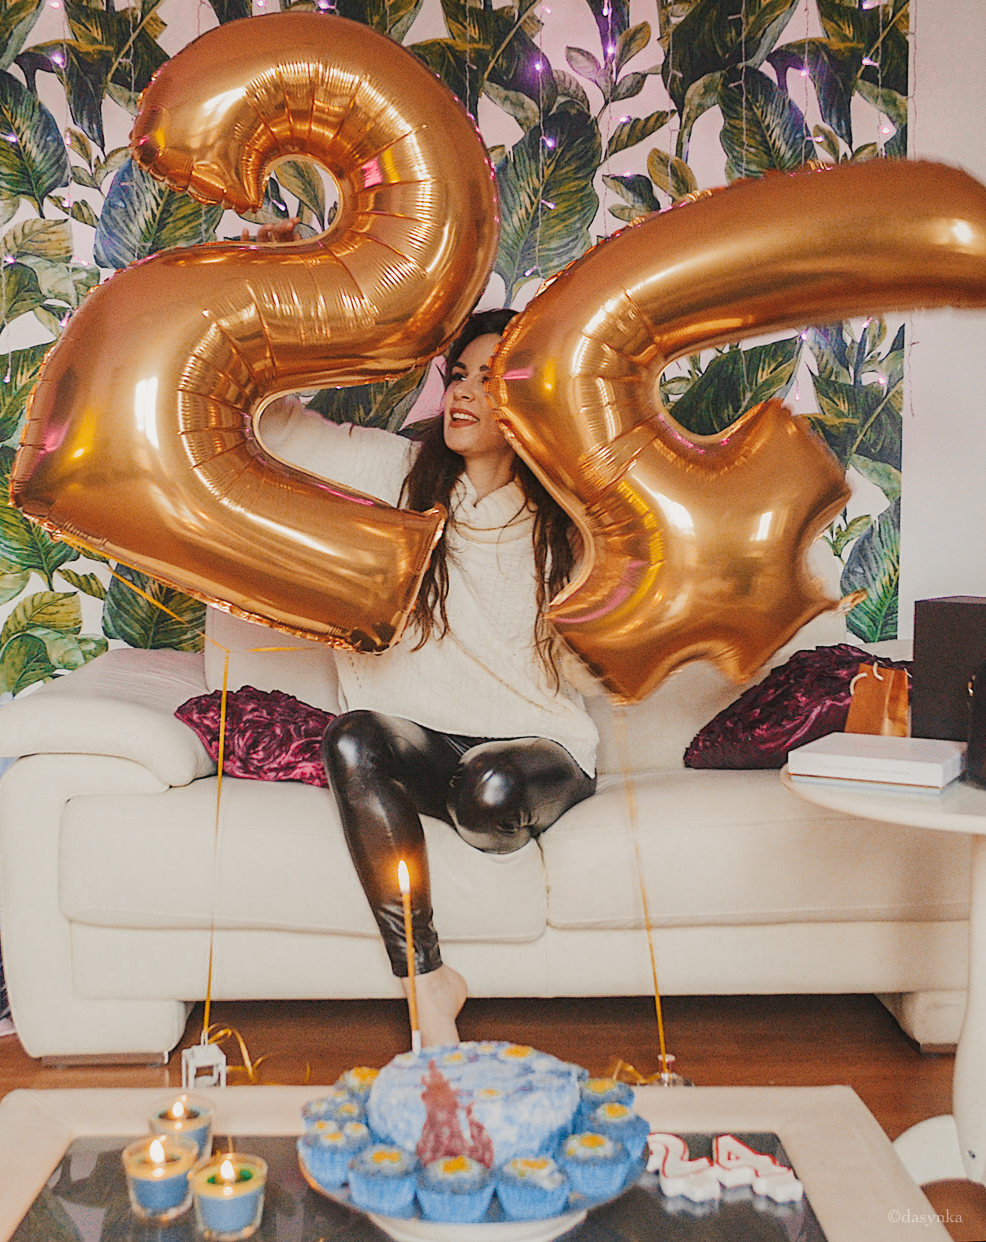 dasynka-fashion-blog-blogger-influencer-inspiration-women-ootd-inspo-outfit-shooting-model-globettrotter-travel-girl-lookbook-instagram-long-hair-street-style-casual-italy-lifestyle-birthday-bday-cake-van-gogh-painting-design-paint-starry-night-ballons-luxury-gift-surprise-inspo-design-cupcakes-food-galaxy-starts-shot-instagrammer-look